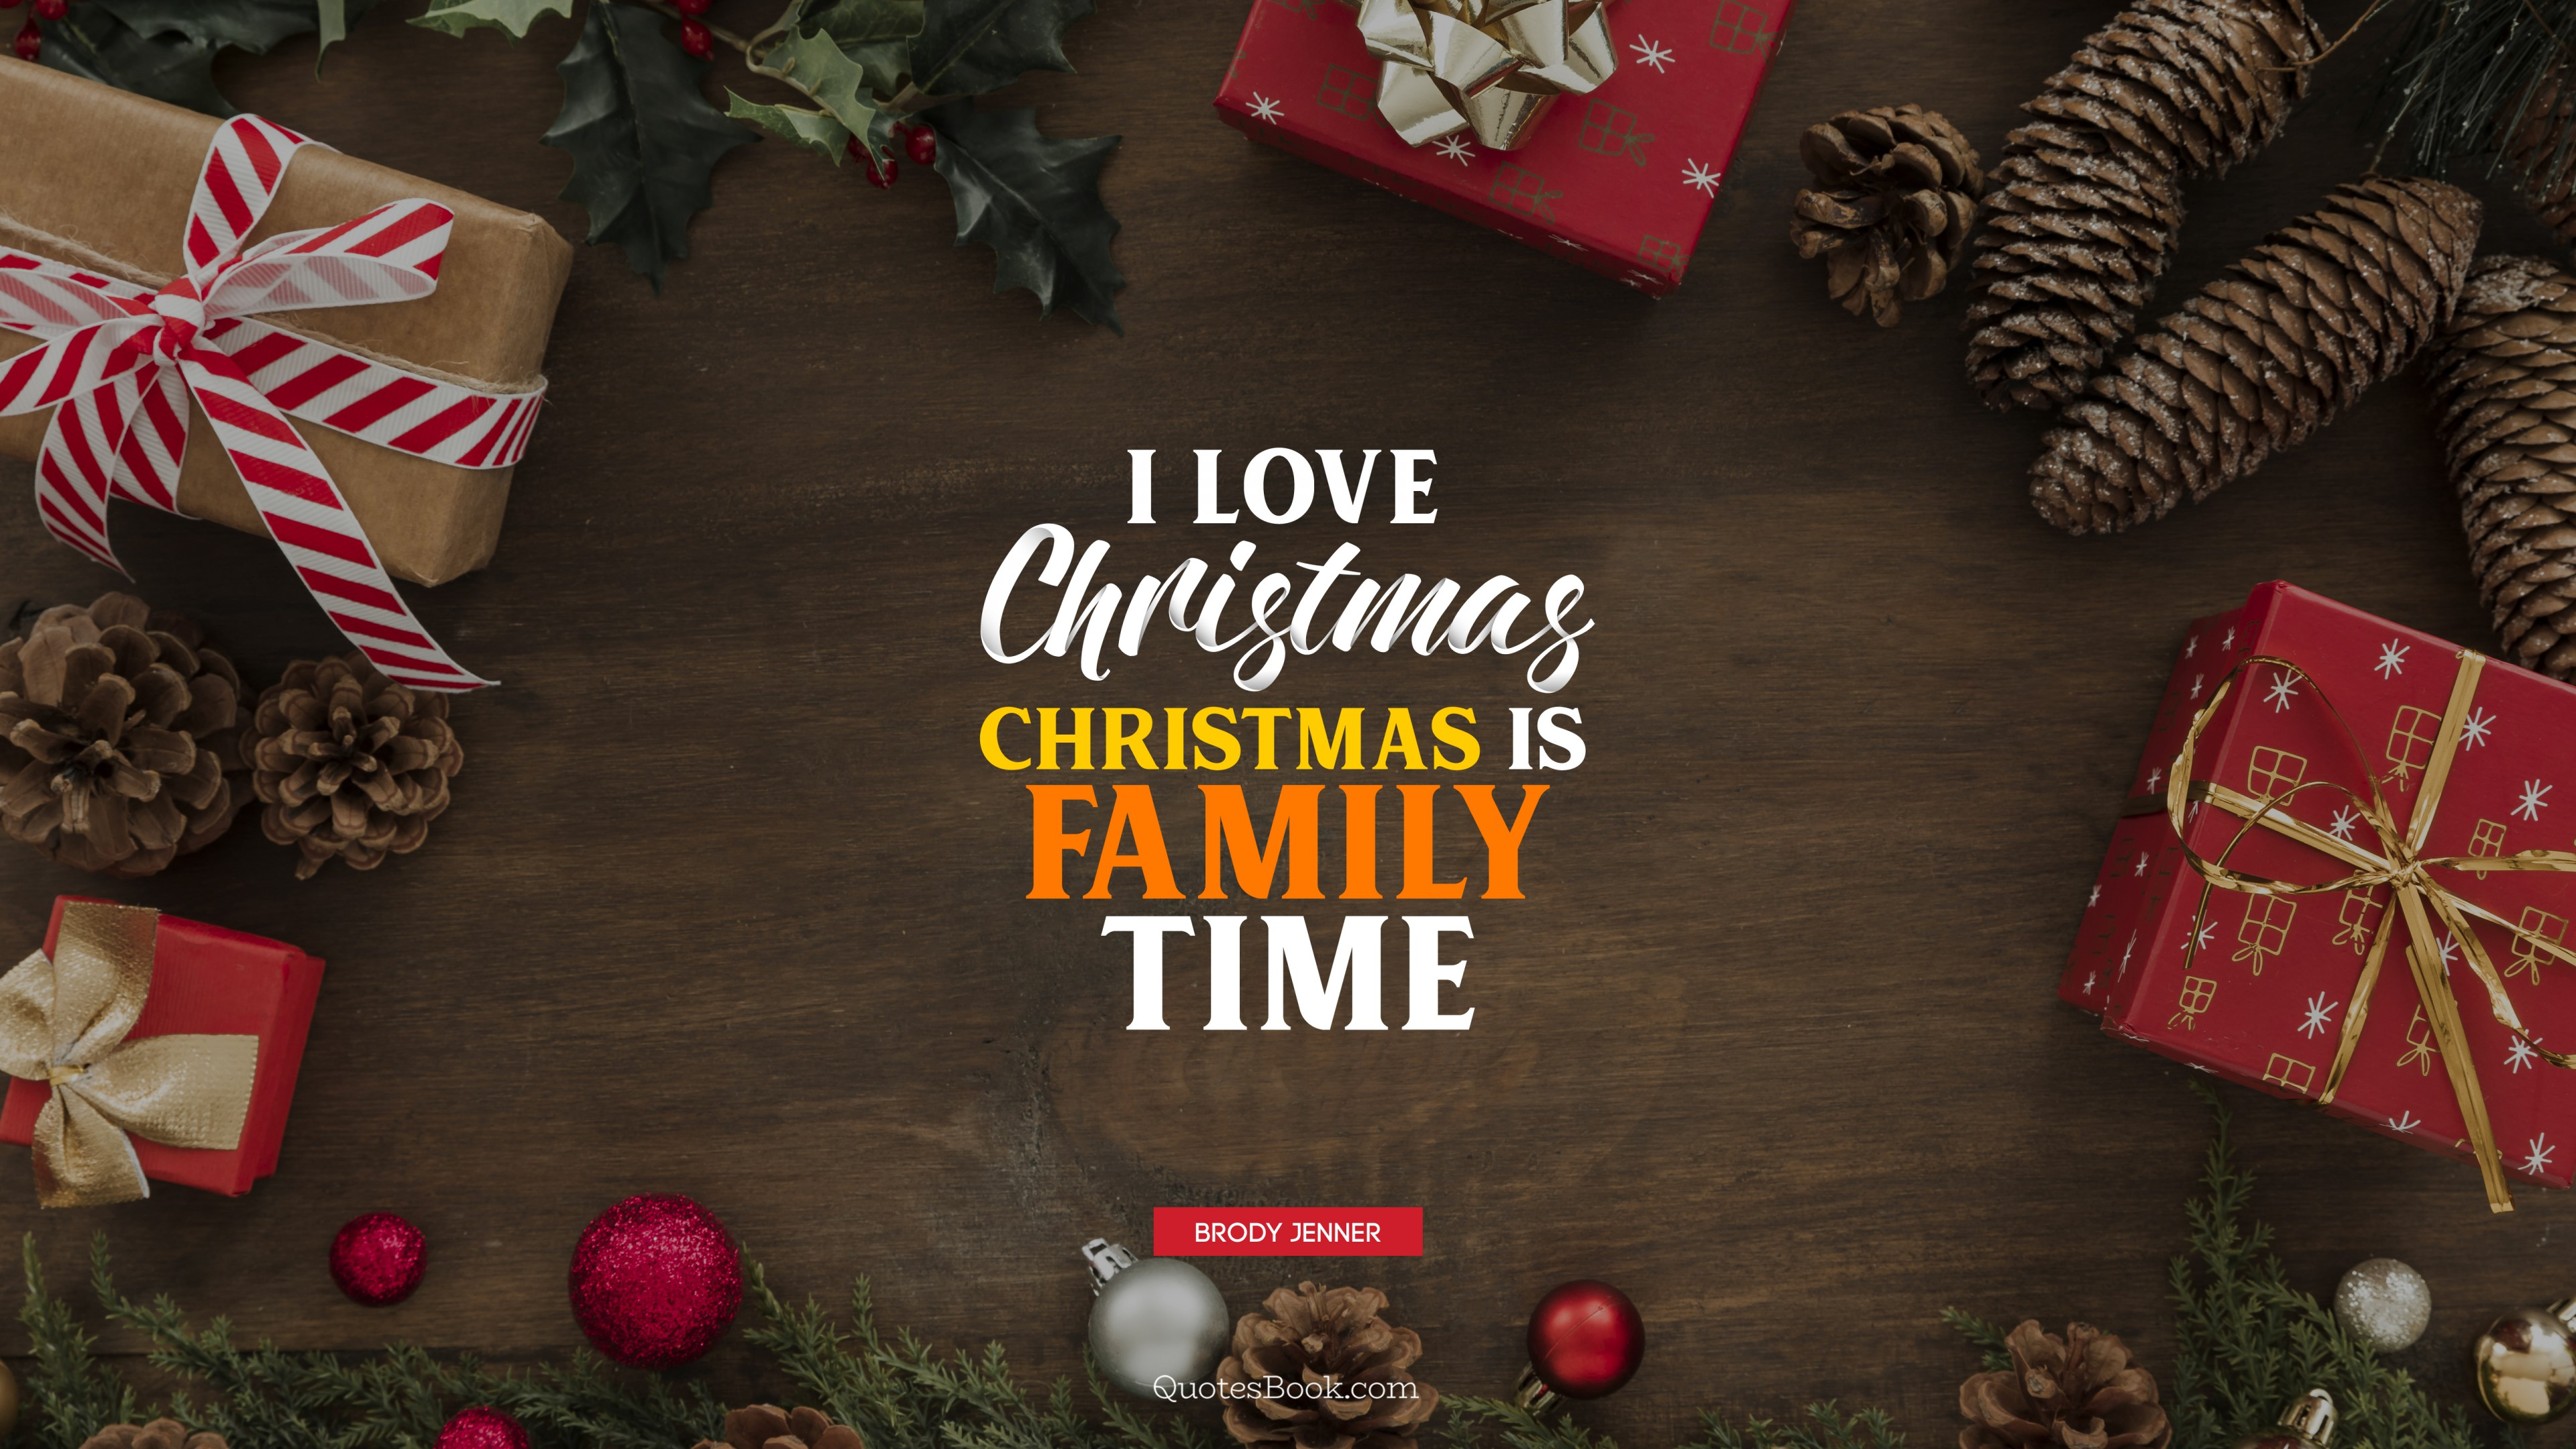 With love christmas